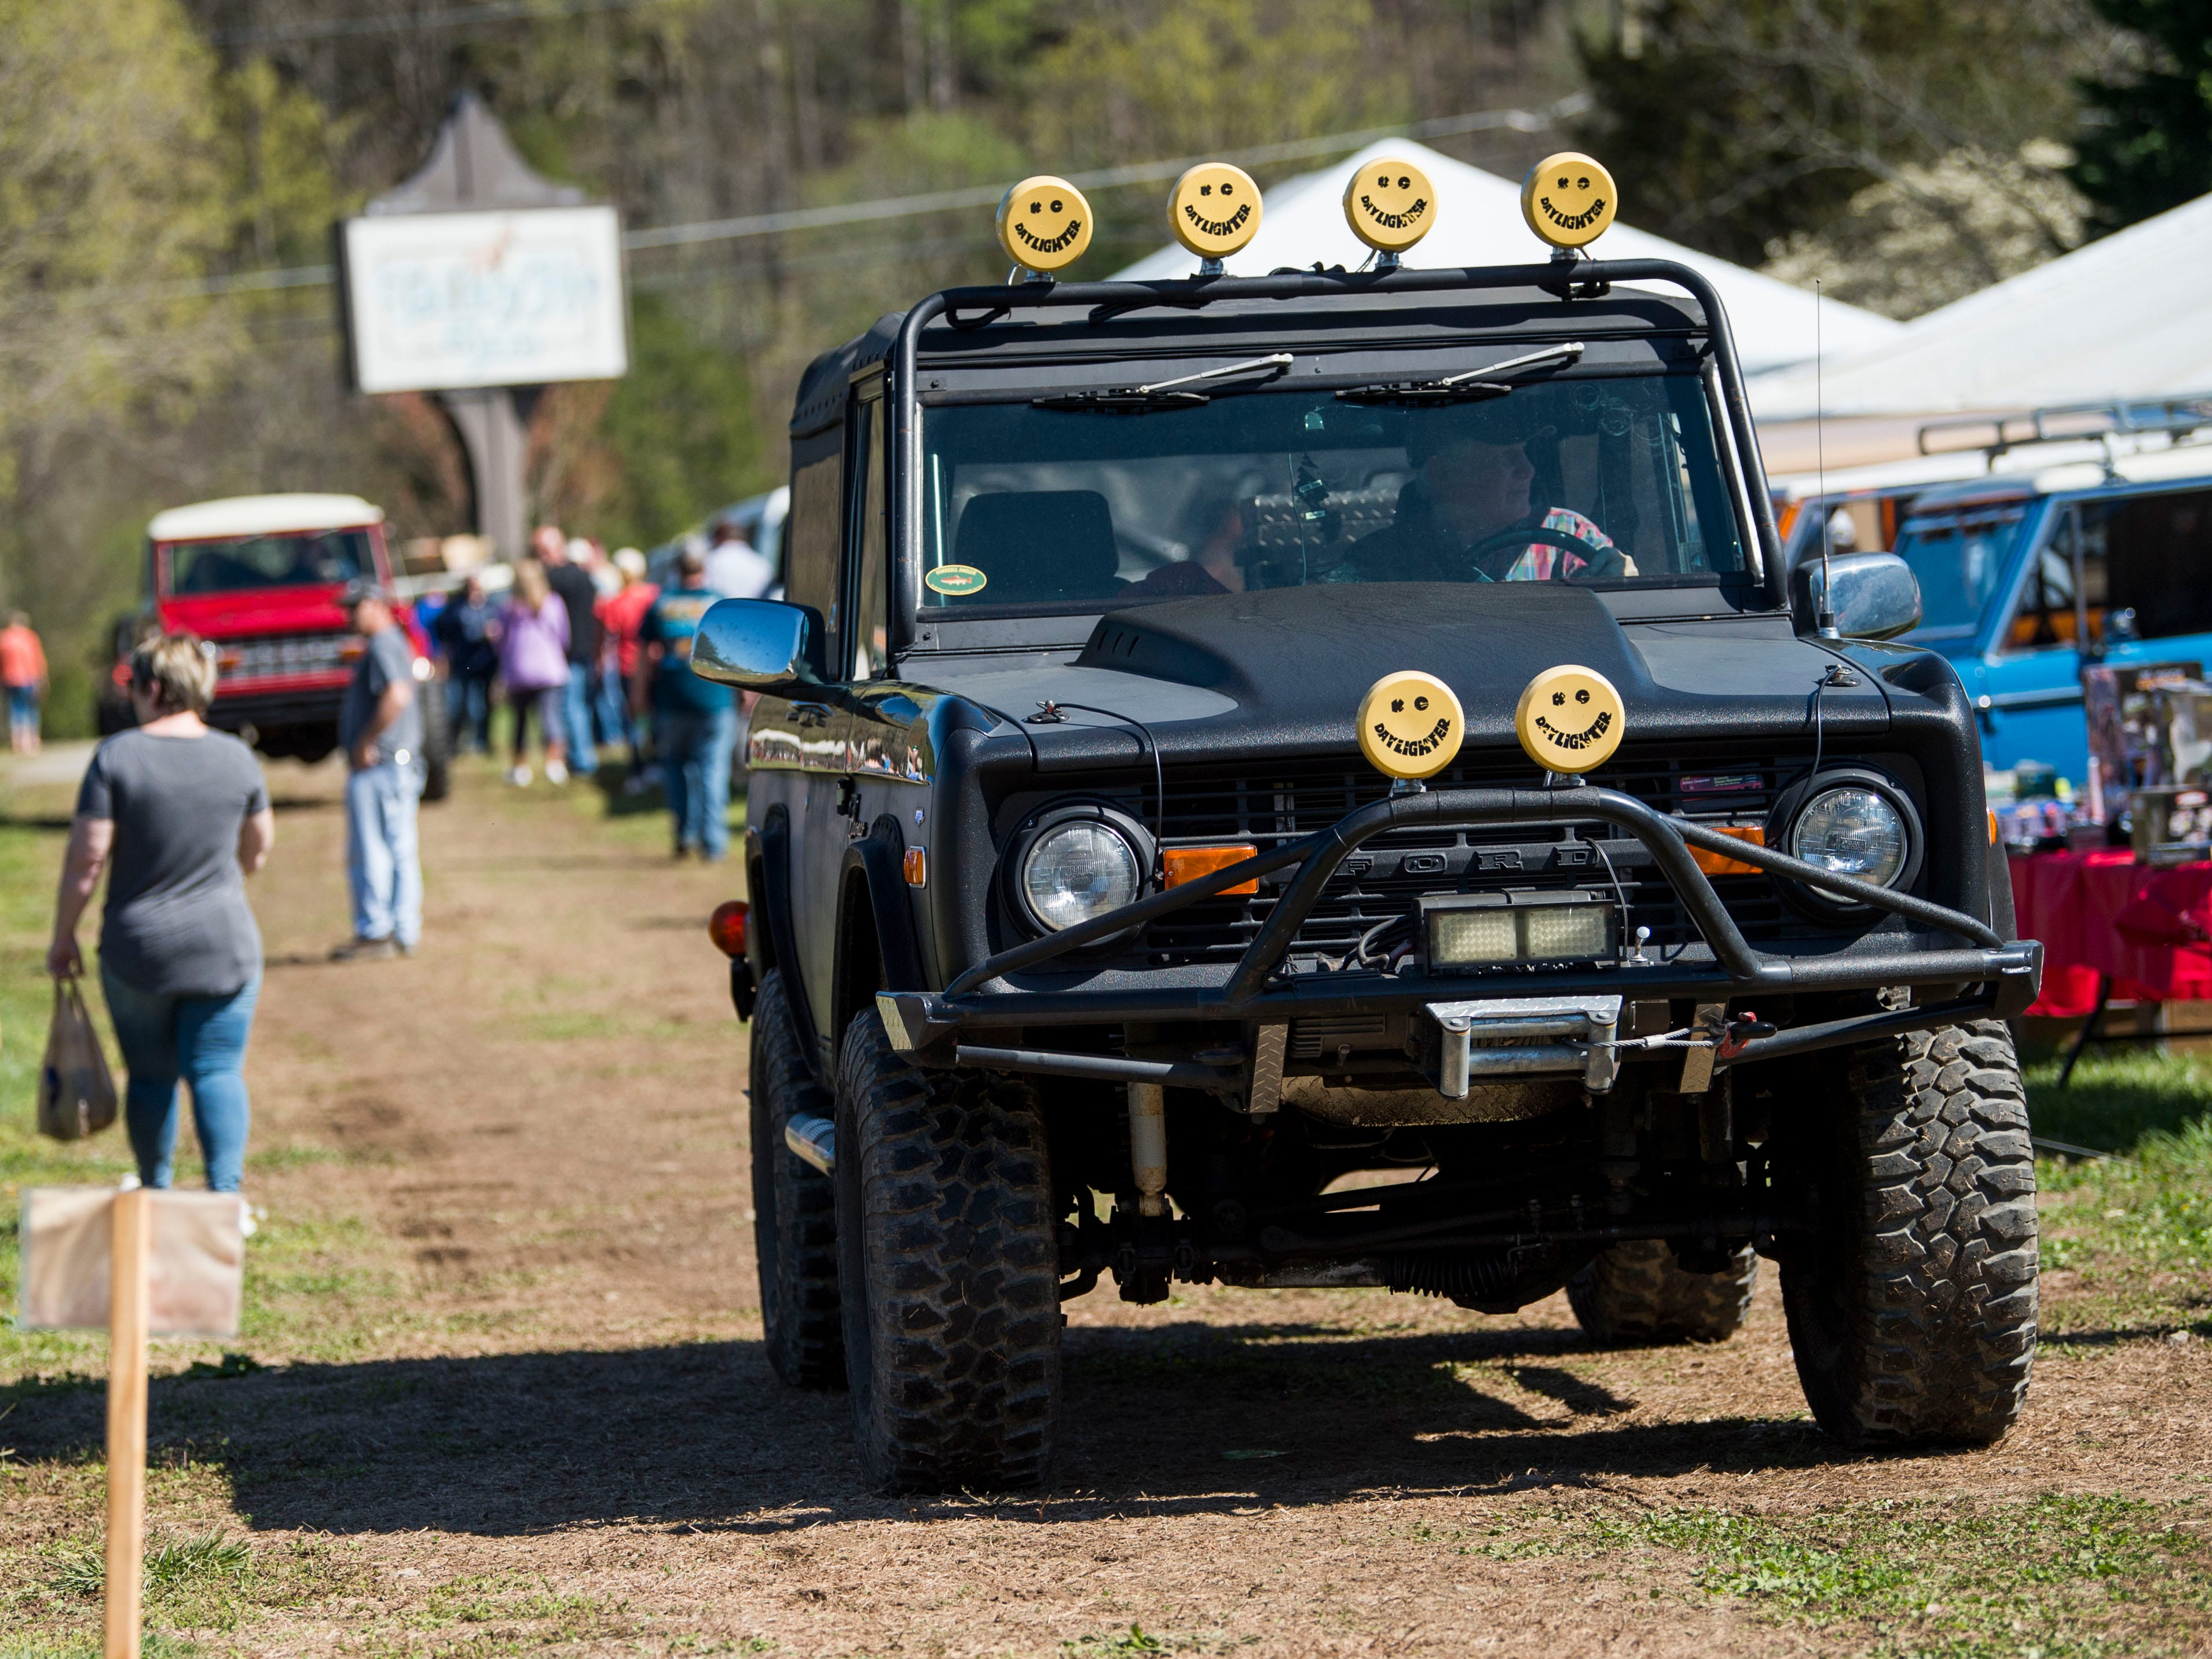 A Ford Bronco makes its way to its spot at the Bronco Super Celebration event held at Tally Ho Inn in Townsend, Tenn. Between 500 and 600 Broncos are expected at the event, which will run from April 10, 2019, to April 13, 2019.